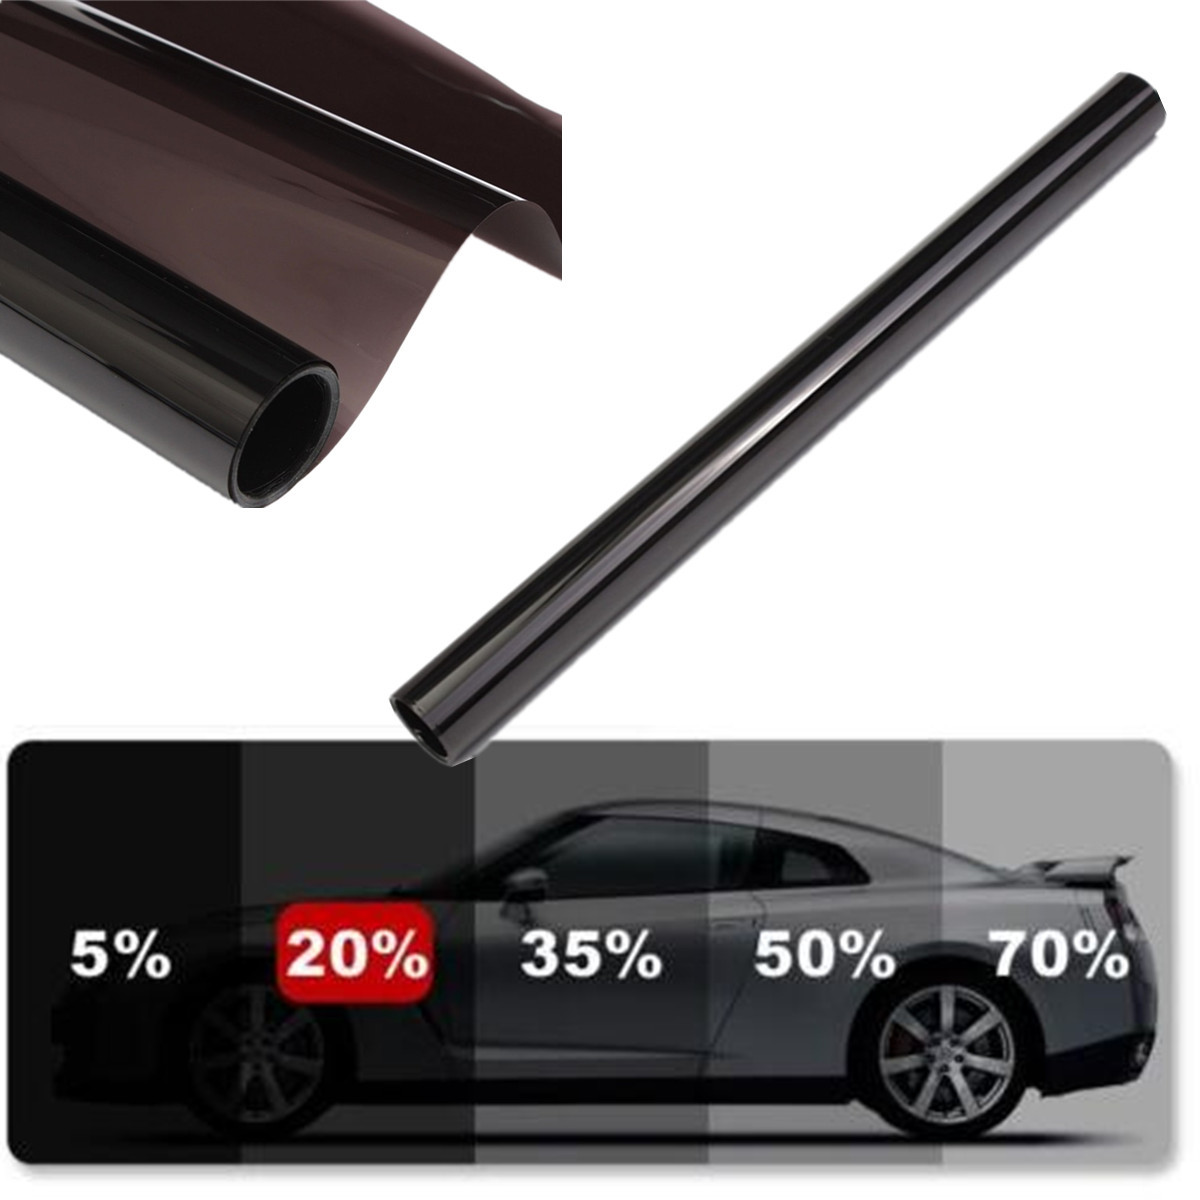 50x600cm Car Window Tint Film Glass VLT 1% 5% 15% 20% 30% 35% 50% Roll 1 PLY Car Auto House Commercial Solar Protection Summer